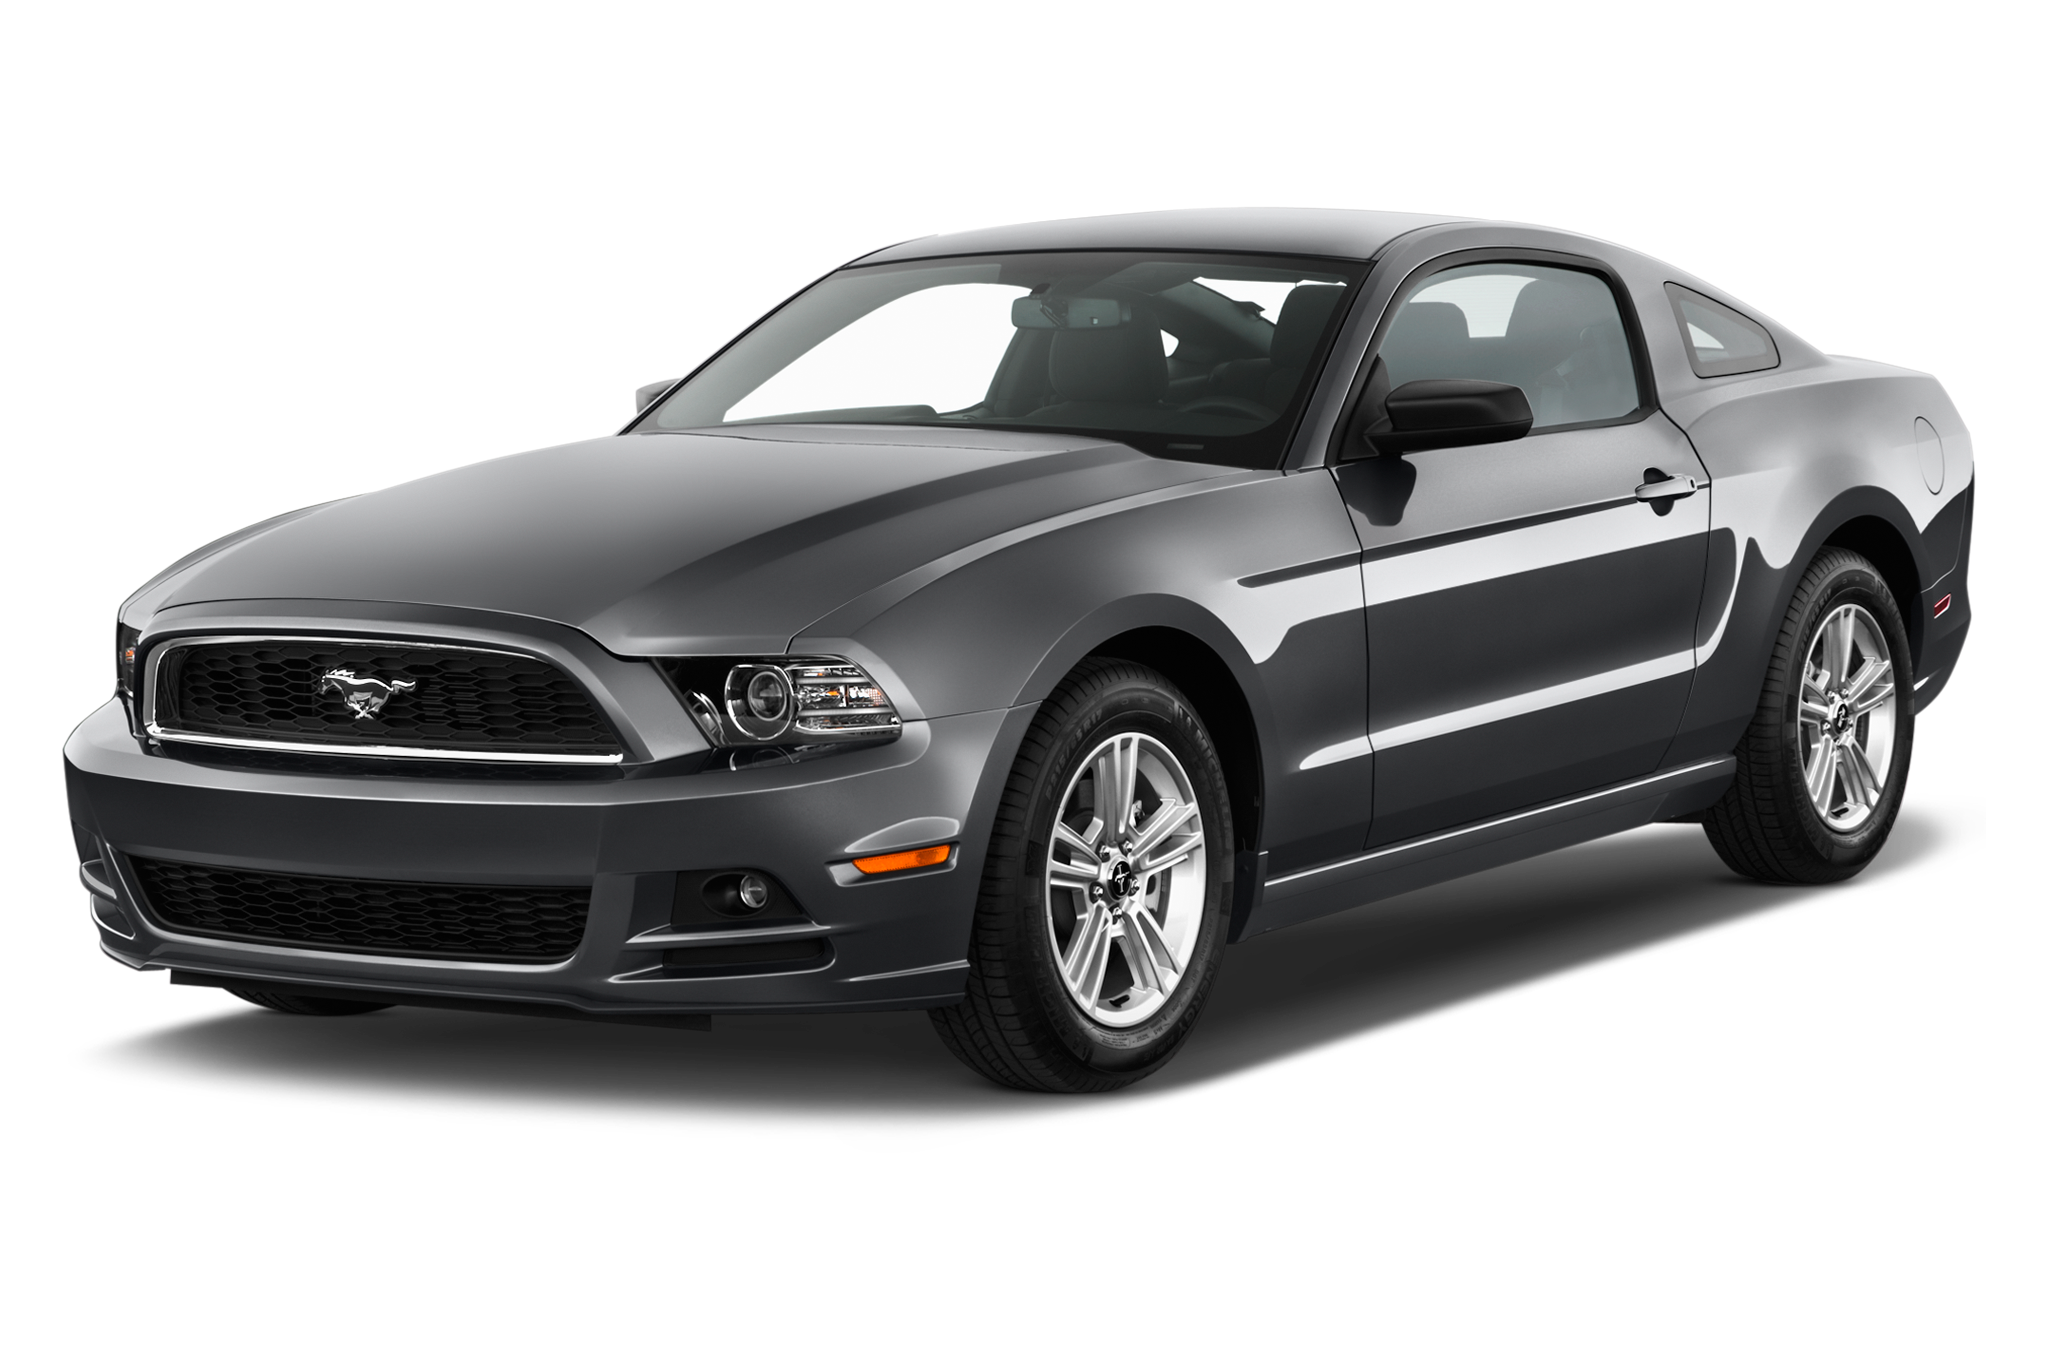 Ford Mustang Png Image 2014 Ford Mustang Ford Mustang Coupe Ford Mustang